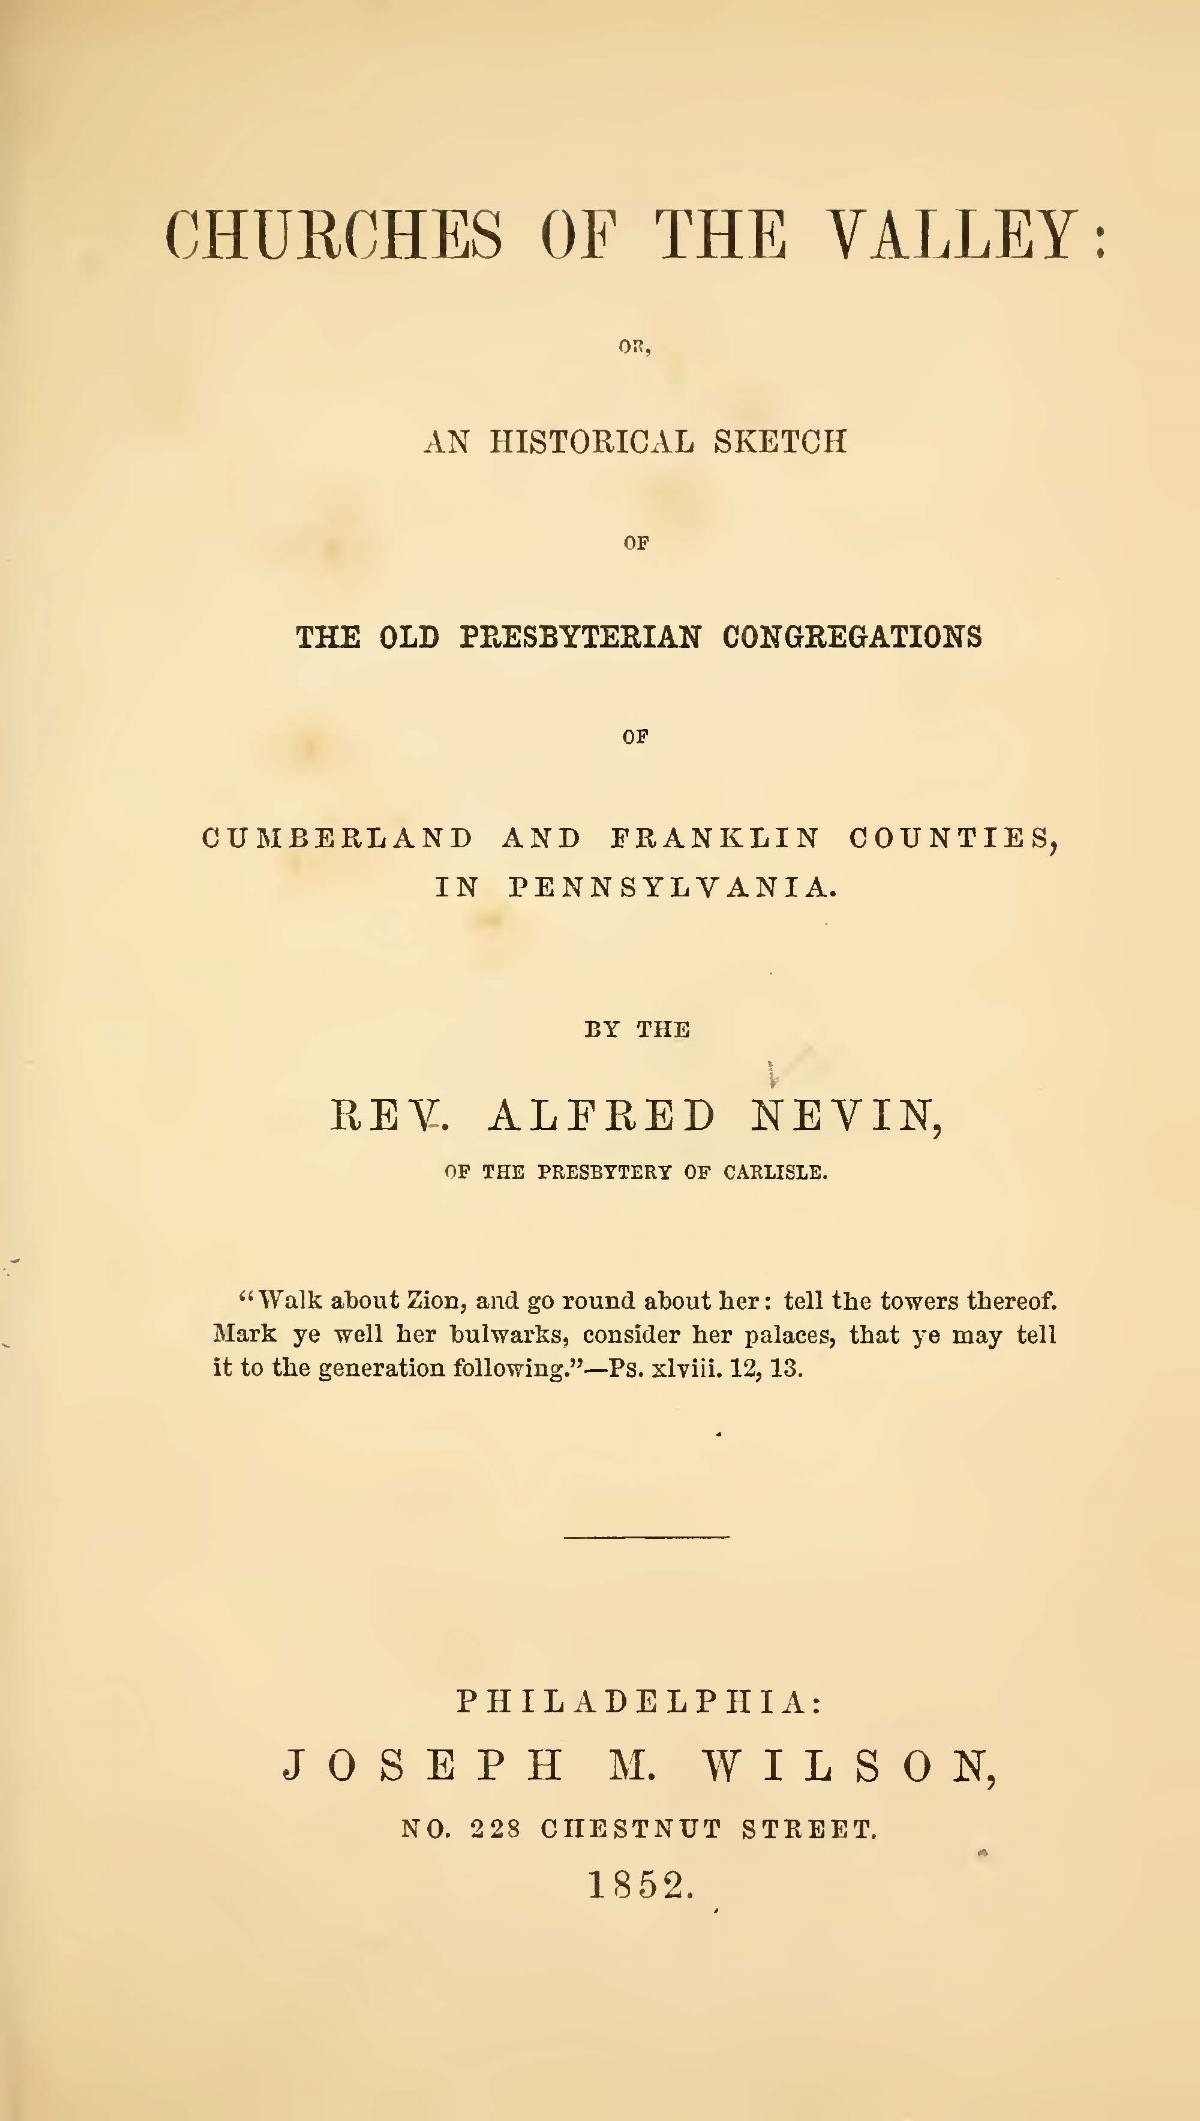 Nevin, Alfred, Churches of the Valley or, An Historical Sketch of the Old Presbyterian Congregations Title Page.jpg